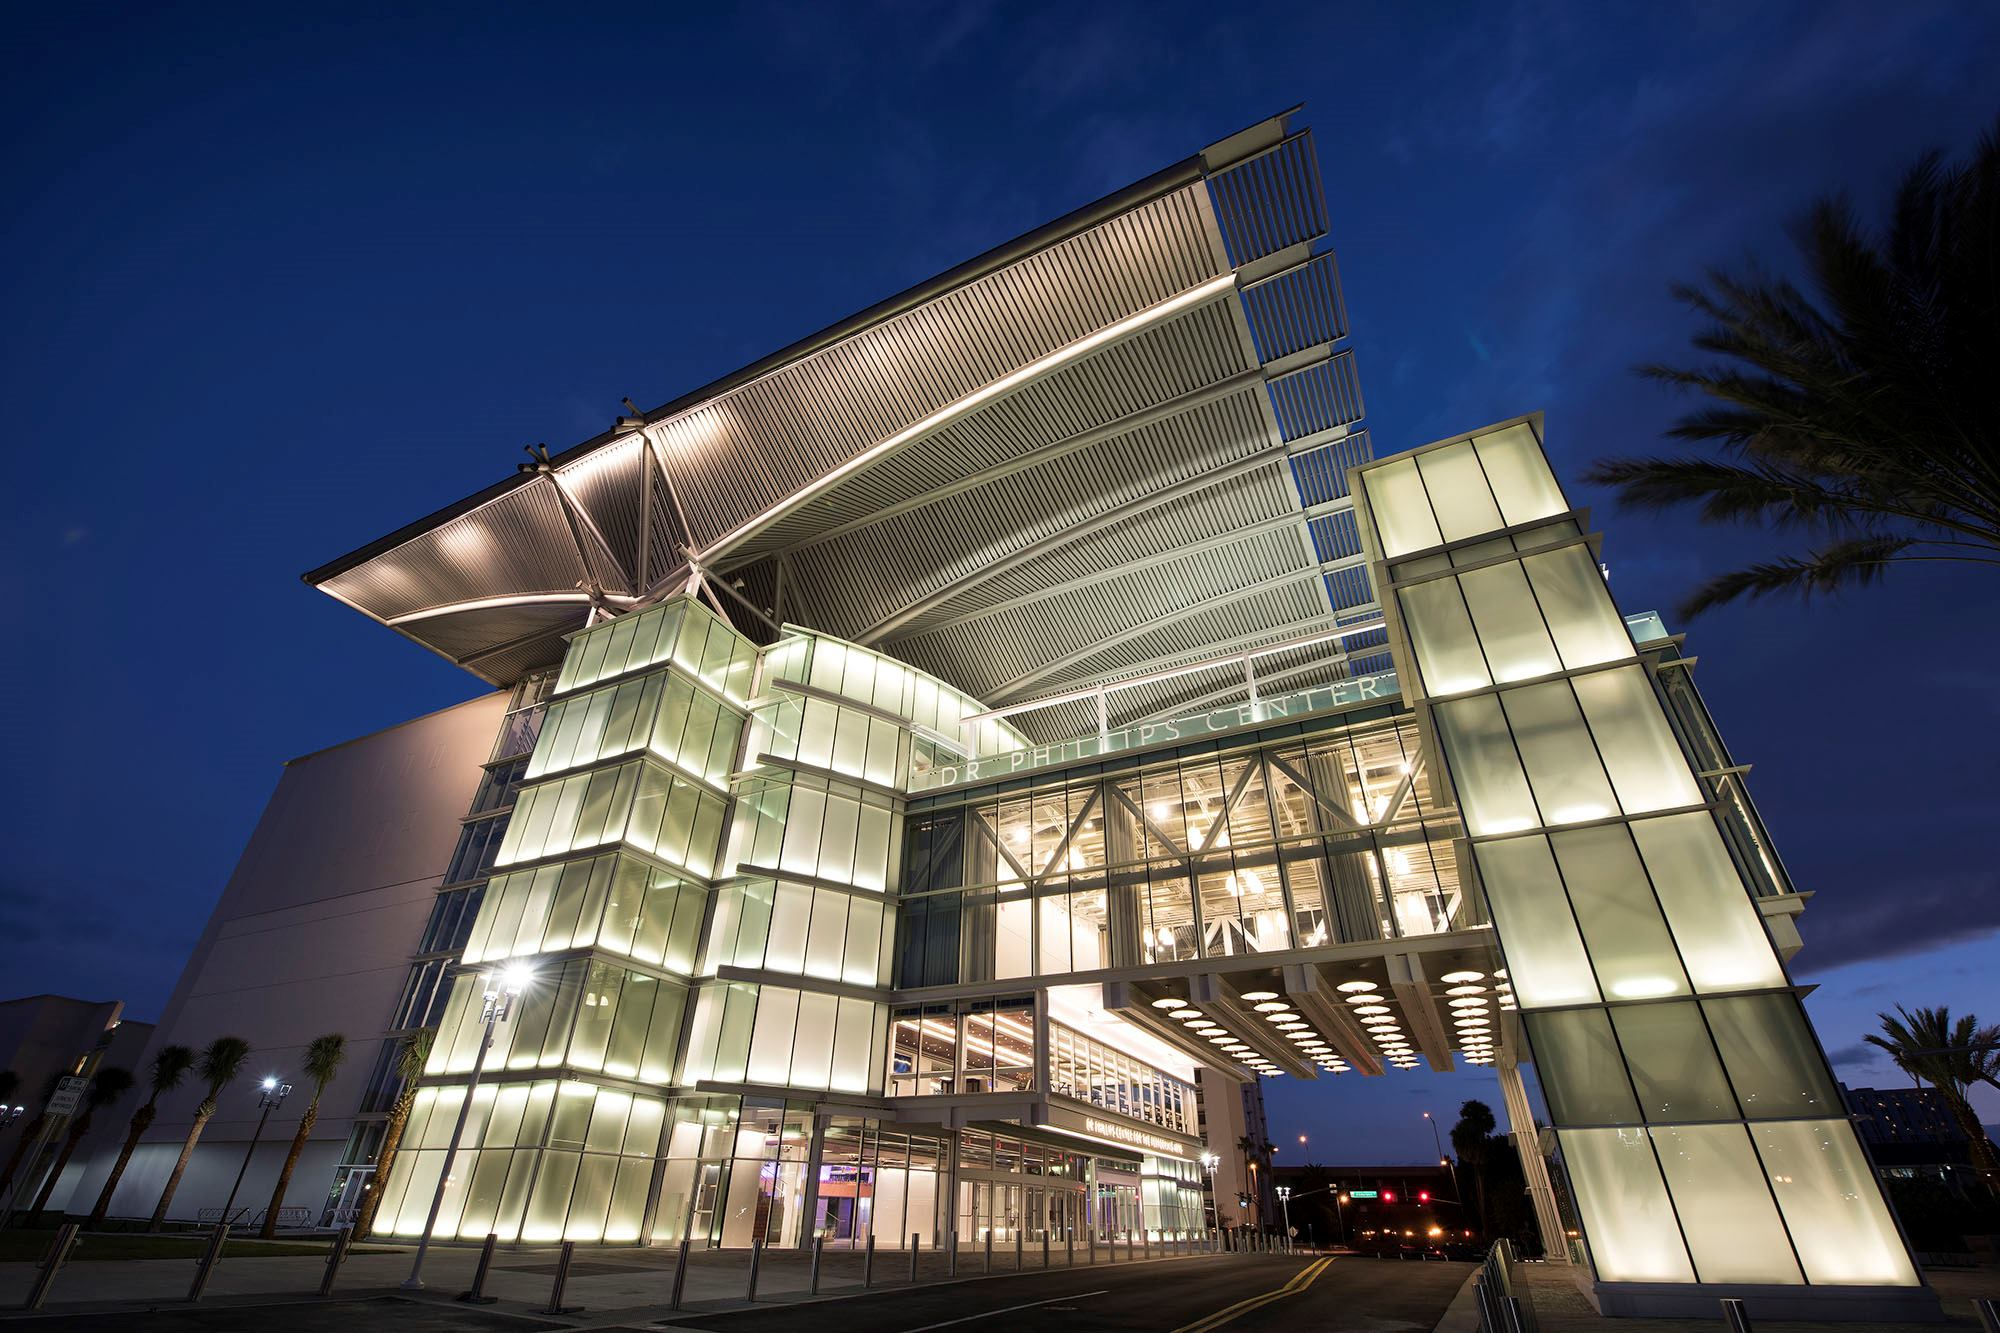 Dr phillips center for the performing arts opens in Architect florida